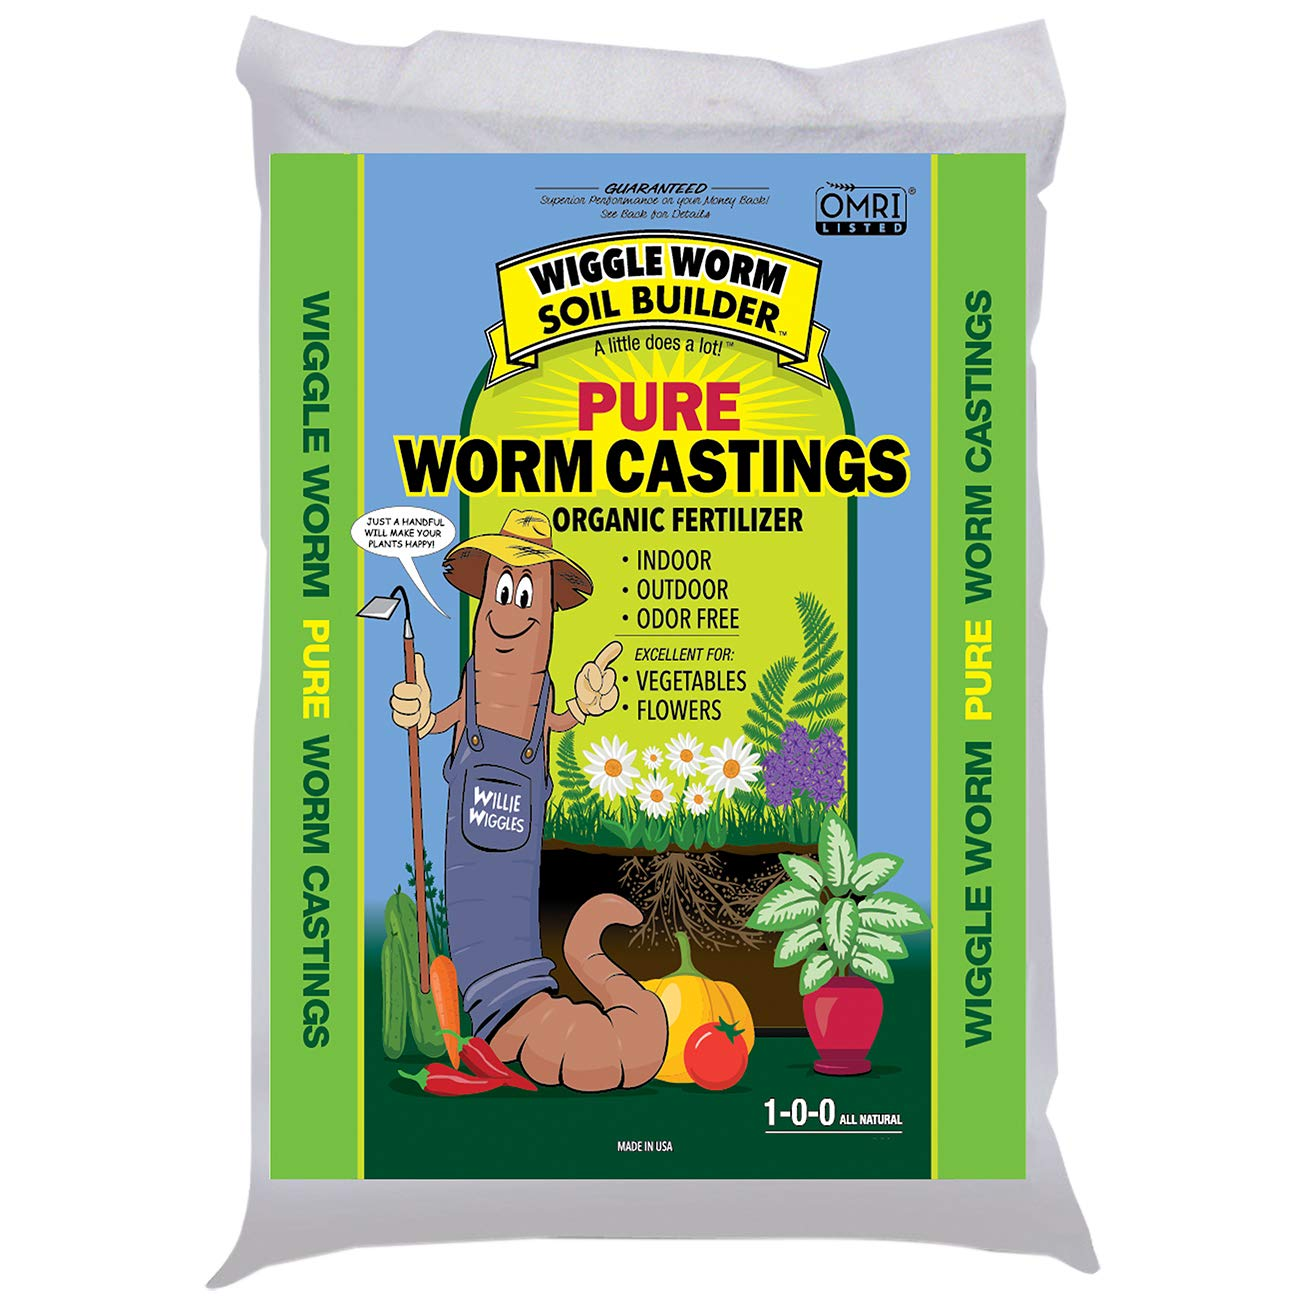 Wiggle Worm WWSB30LB Unco Industries Builder Worm Castings, 30 lb Compost, Soil, 30-Pound by Wiggle Worm